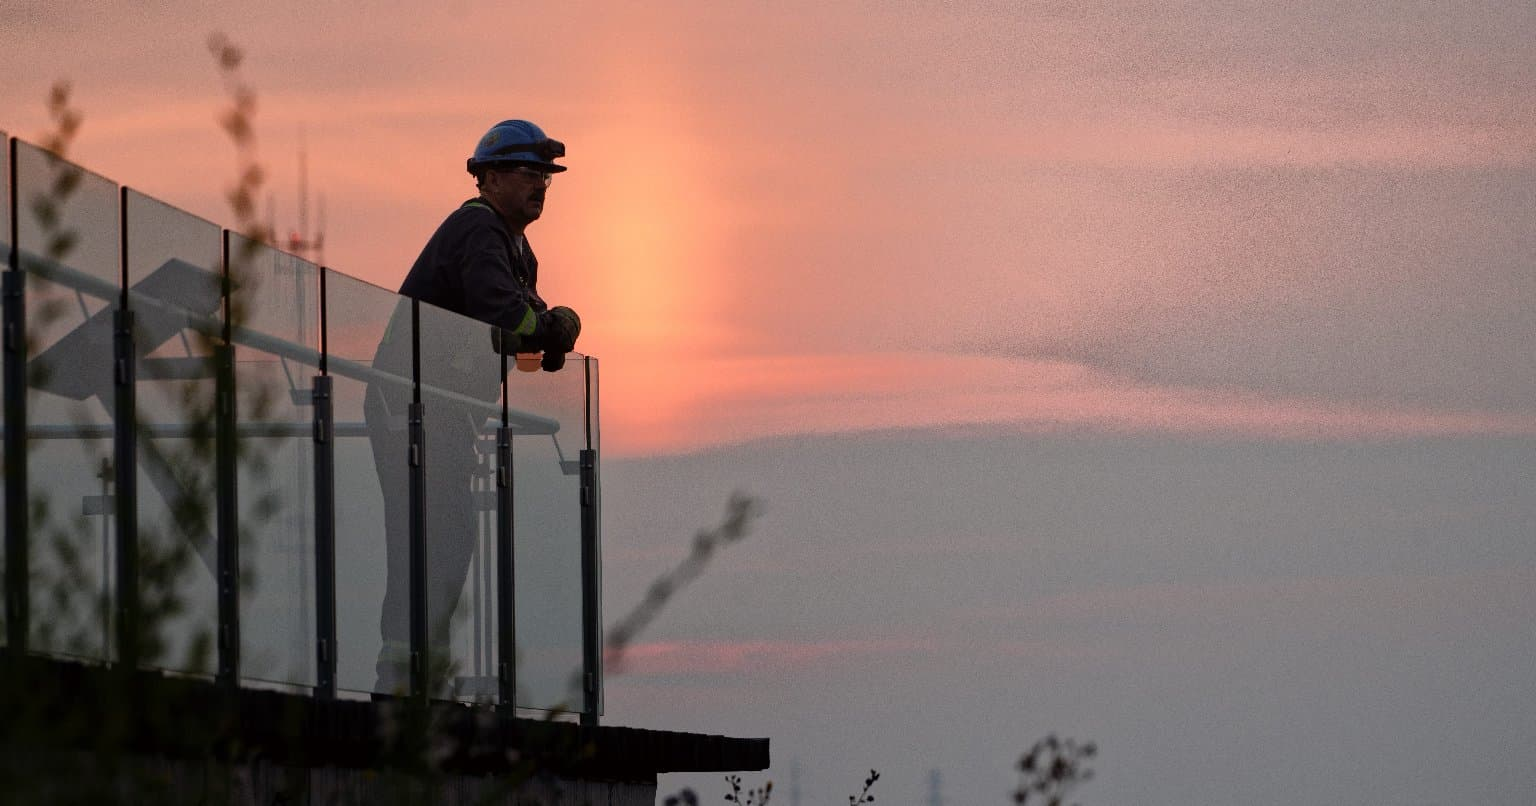 Sunrise image at Suncor Base Plant with man in shadows